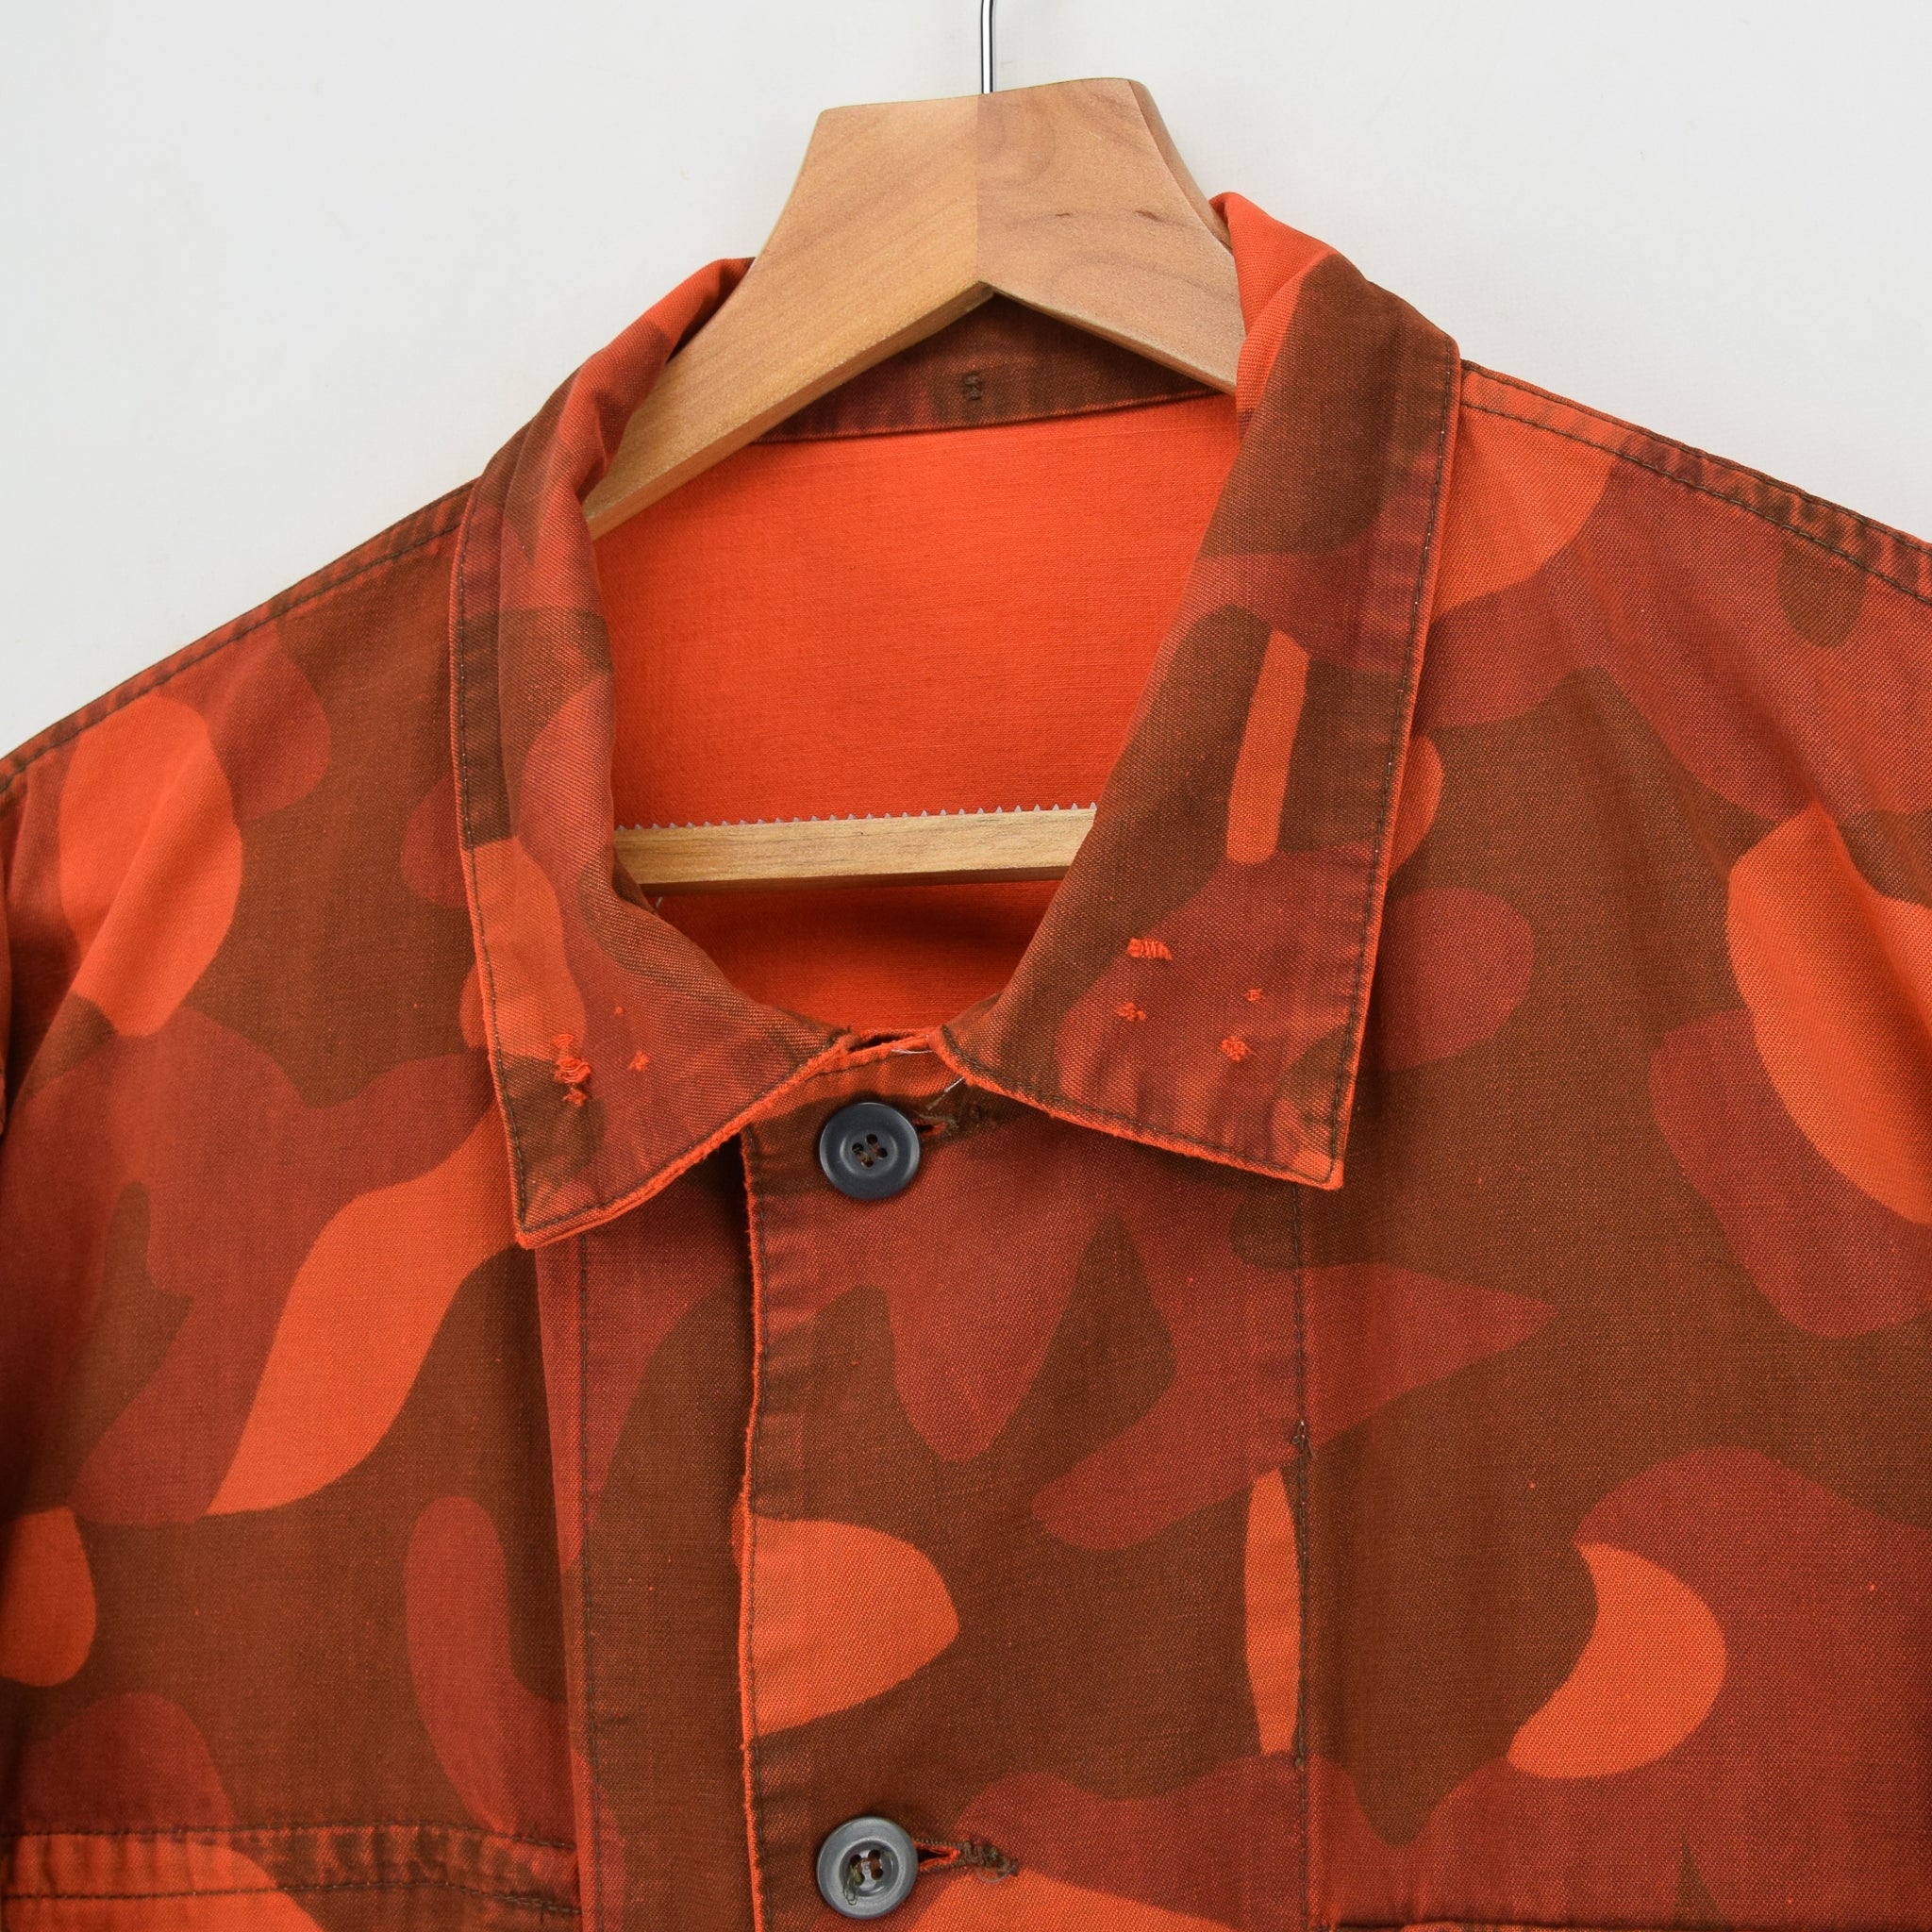 Vintage 80s Military Finnish Army Orange Overdyed Camo Mountain Field Jacket XL collar